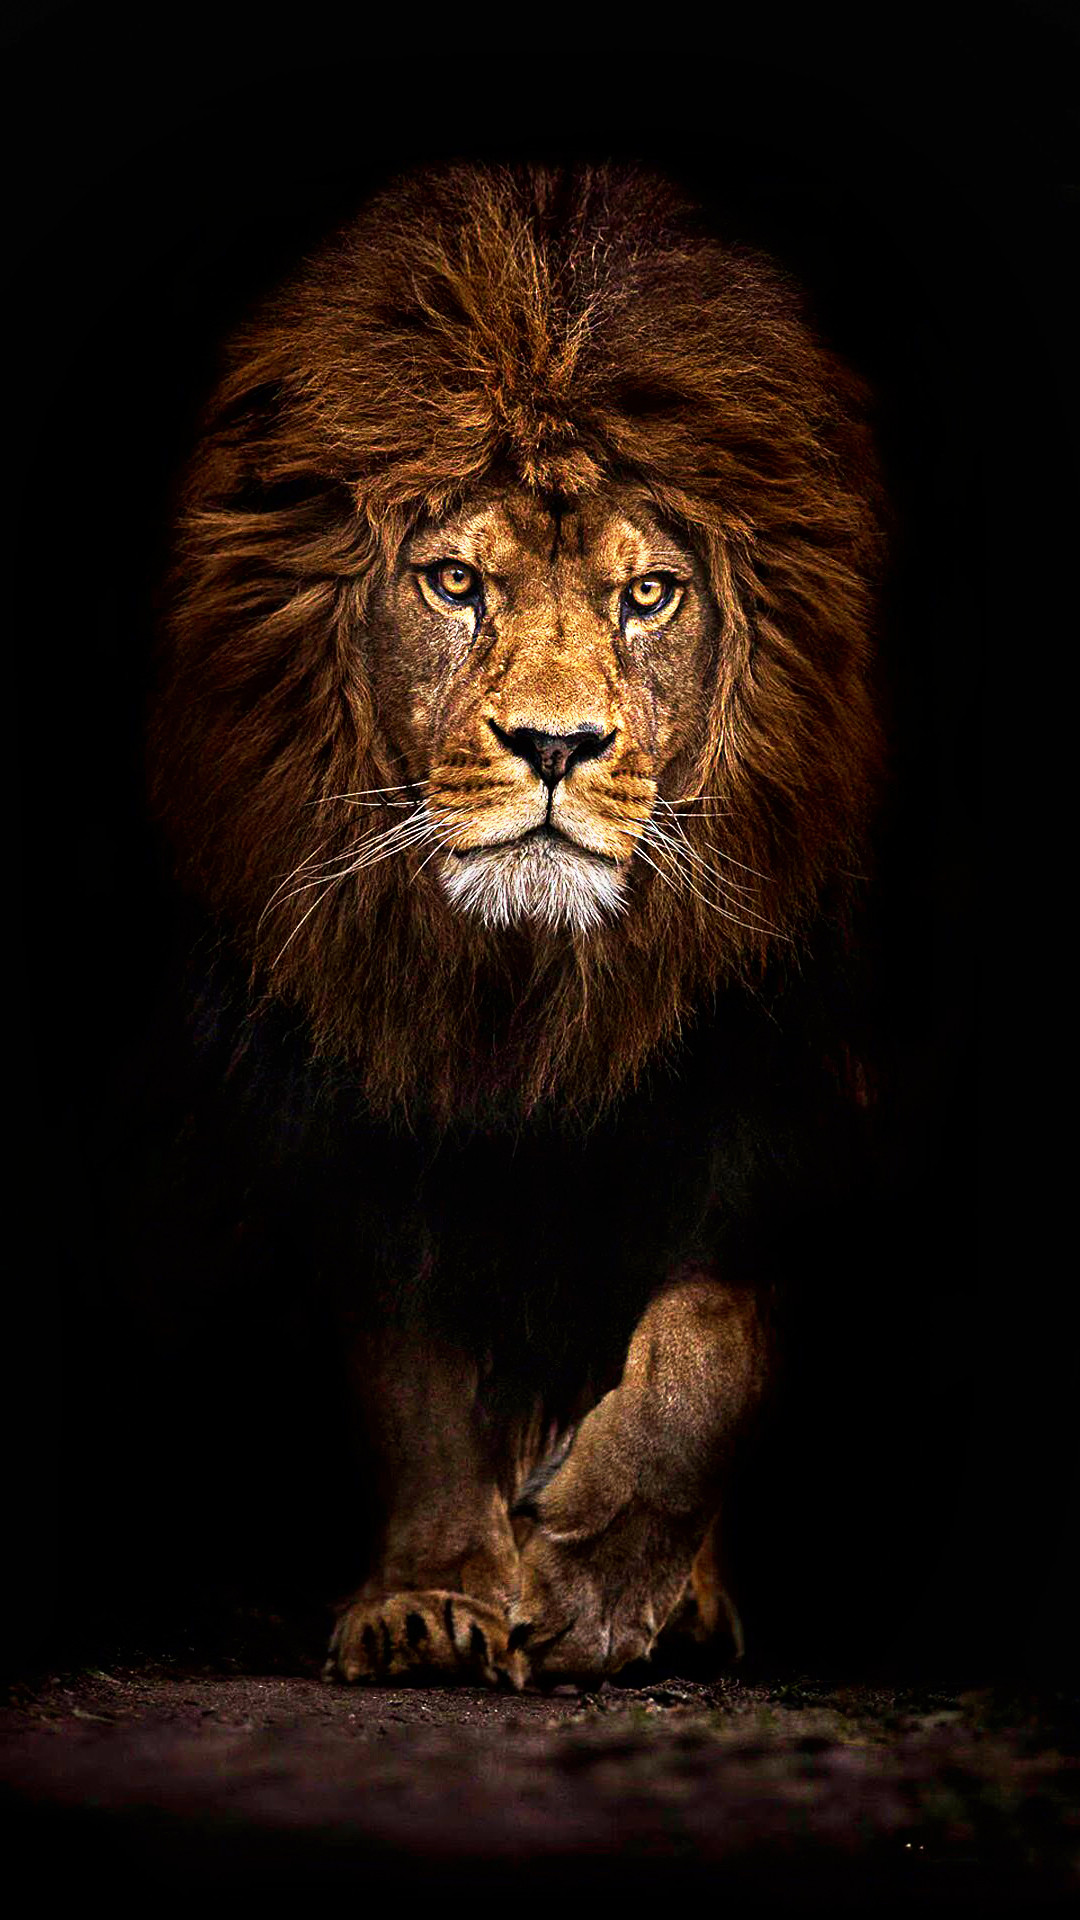 Cool Lion Wallpapers For Iphone - Ultra Hd 4k Wallpaper For Mobile - HD Wallpaper